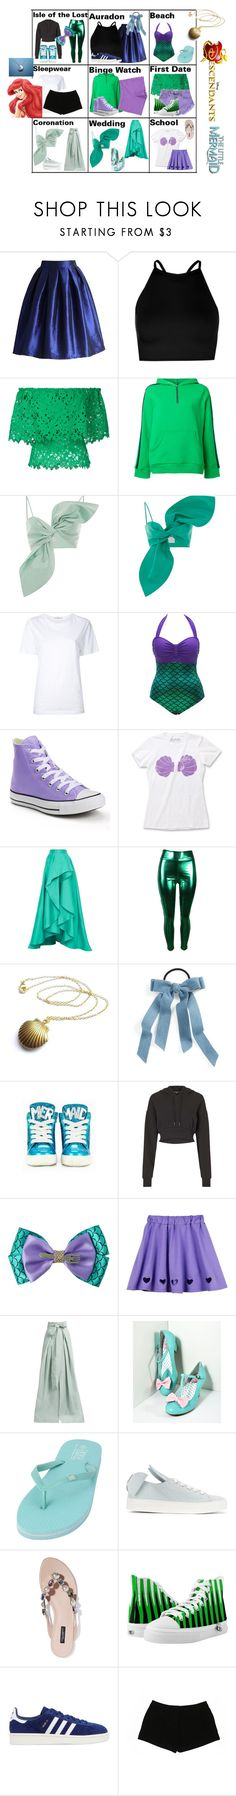 """""""Ariel and Eric's Daughter"""" by tfryer ❤ liked on Polyvore featuring Disney, Chicwish, Boohoo, Bambah, Roseanna, Leal Daccarett, Astraet, Converse, Cara and Miss KG"""